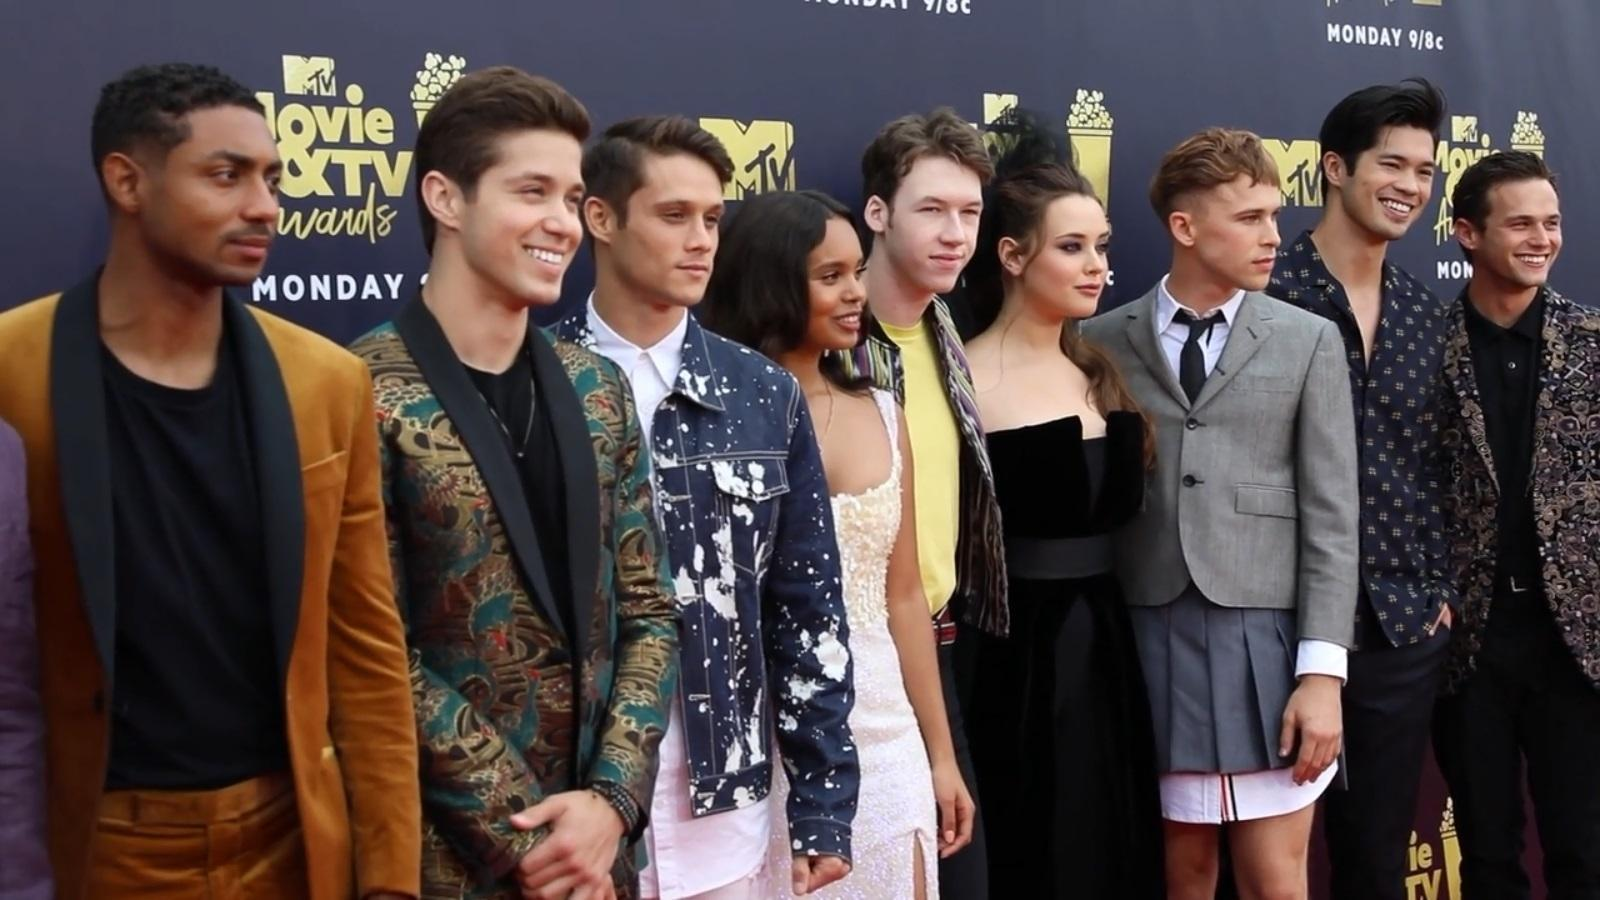 Netflix teases 13 Reasons Why Season 3 Release Date and Plot Details ?